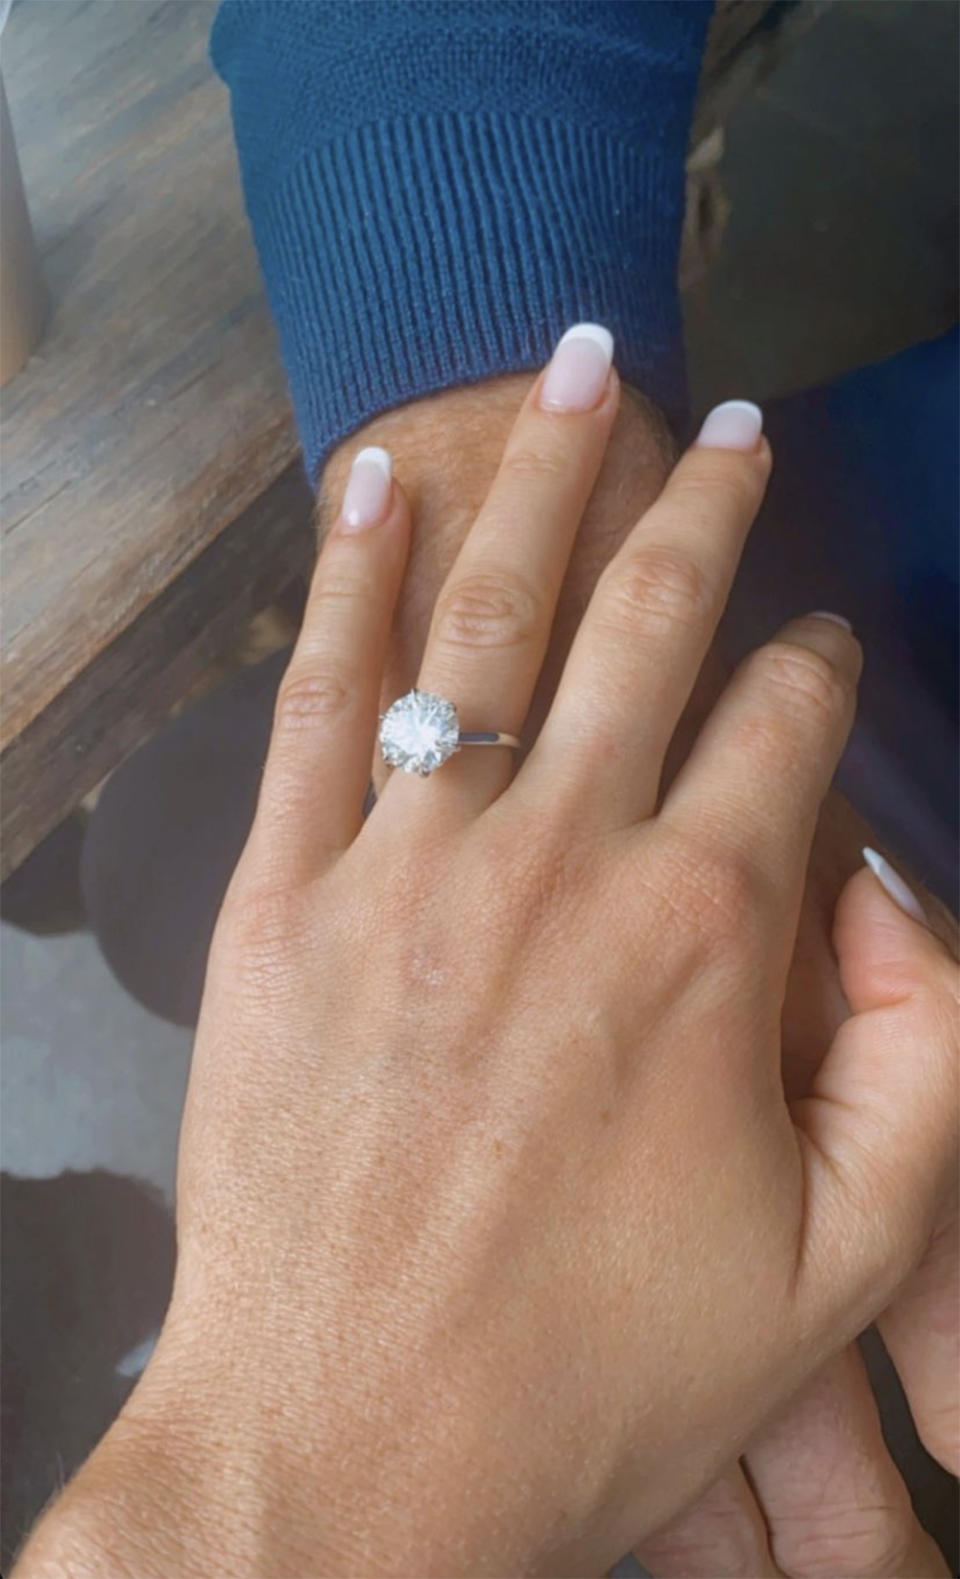 MAFS star Natasha Spencer shows off her 5ct brilliant cut diamond set in an 18ct white gold band